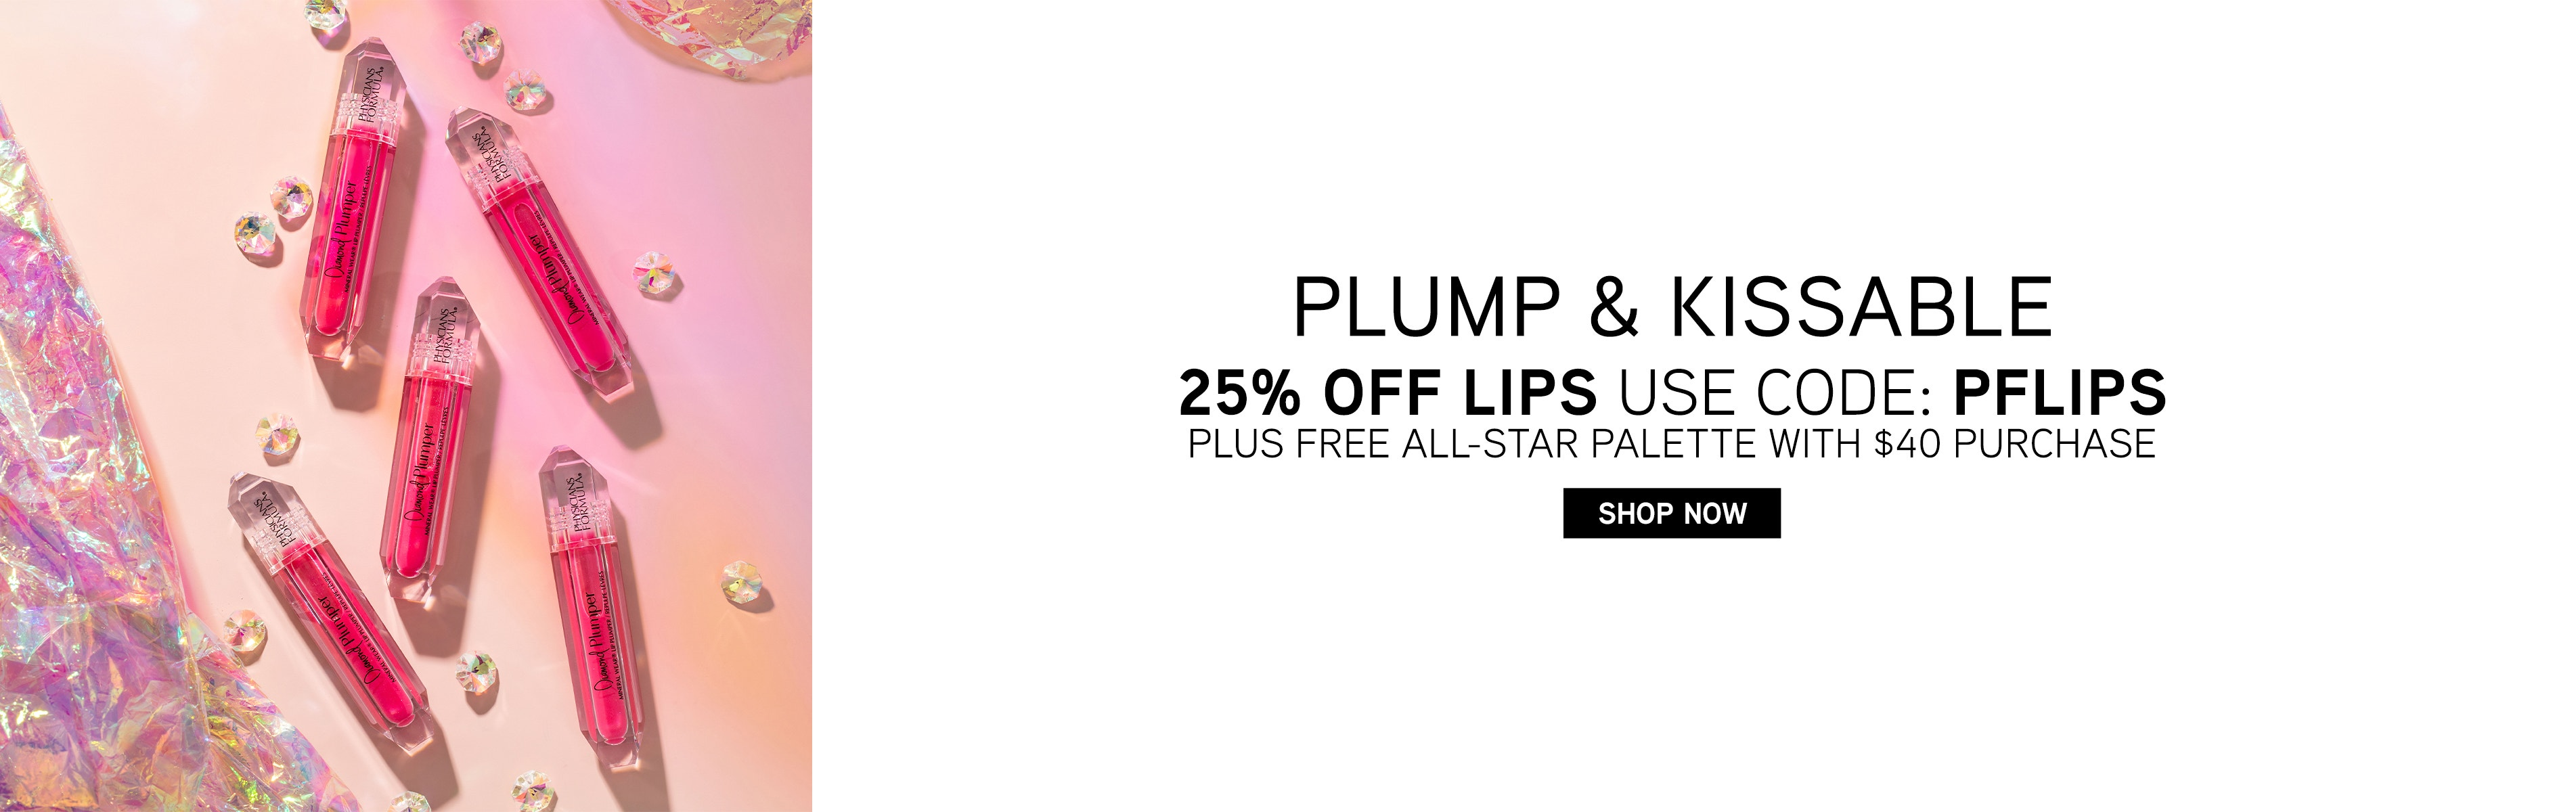 Plump & Kissable - 25% Off Lips Use Code: PFLIPS + Frr All-Star Palette with $40 purchase | Shop Now | Physicians Formula | Products scattered caps fastened with pink background